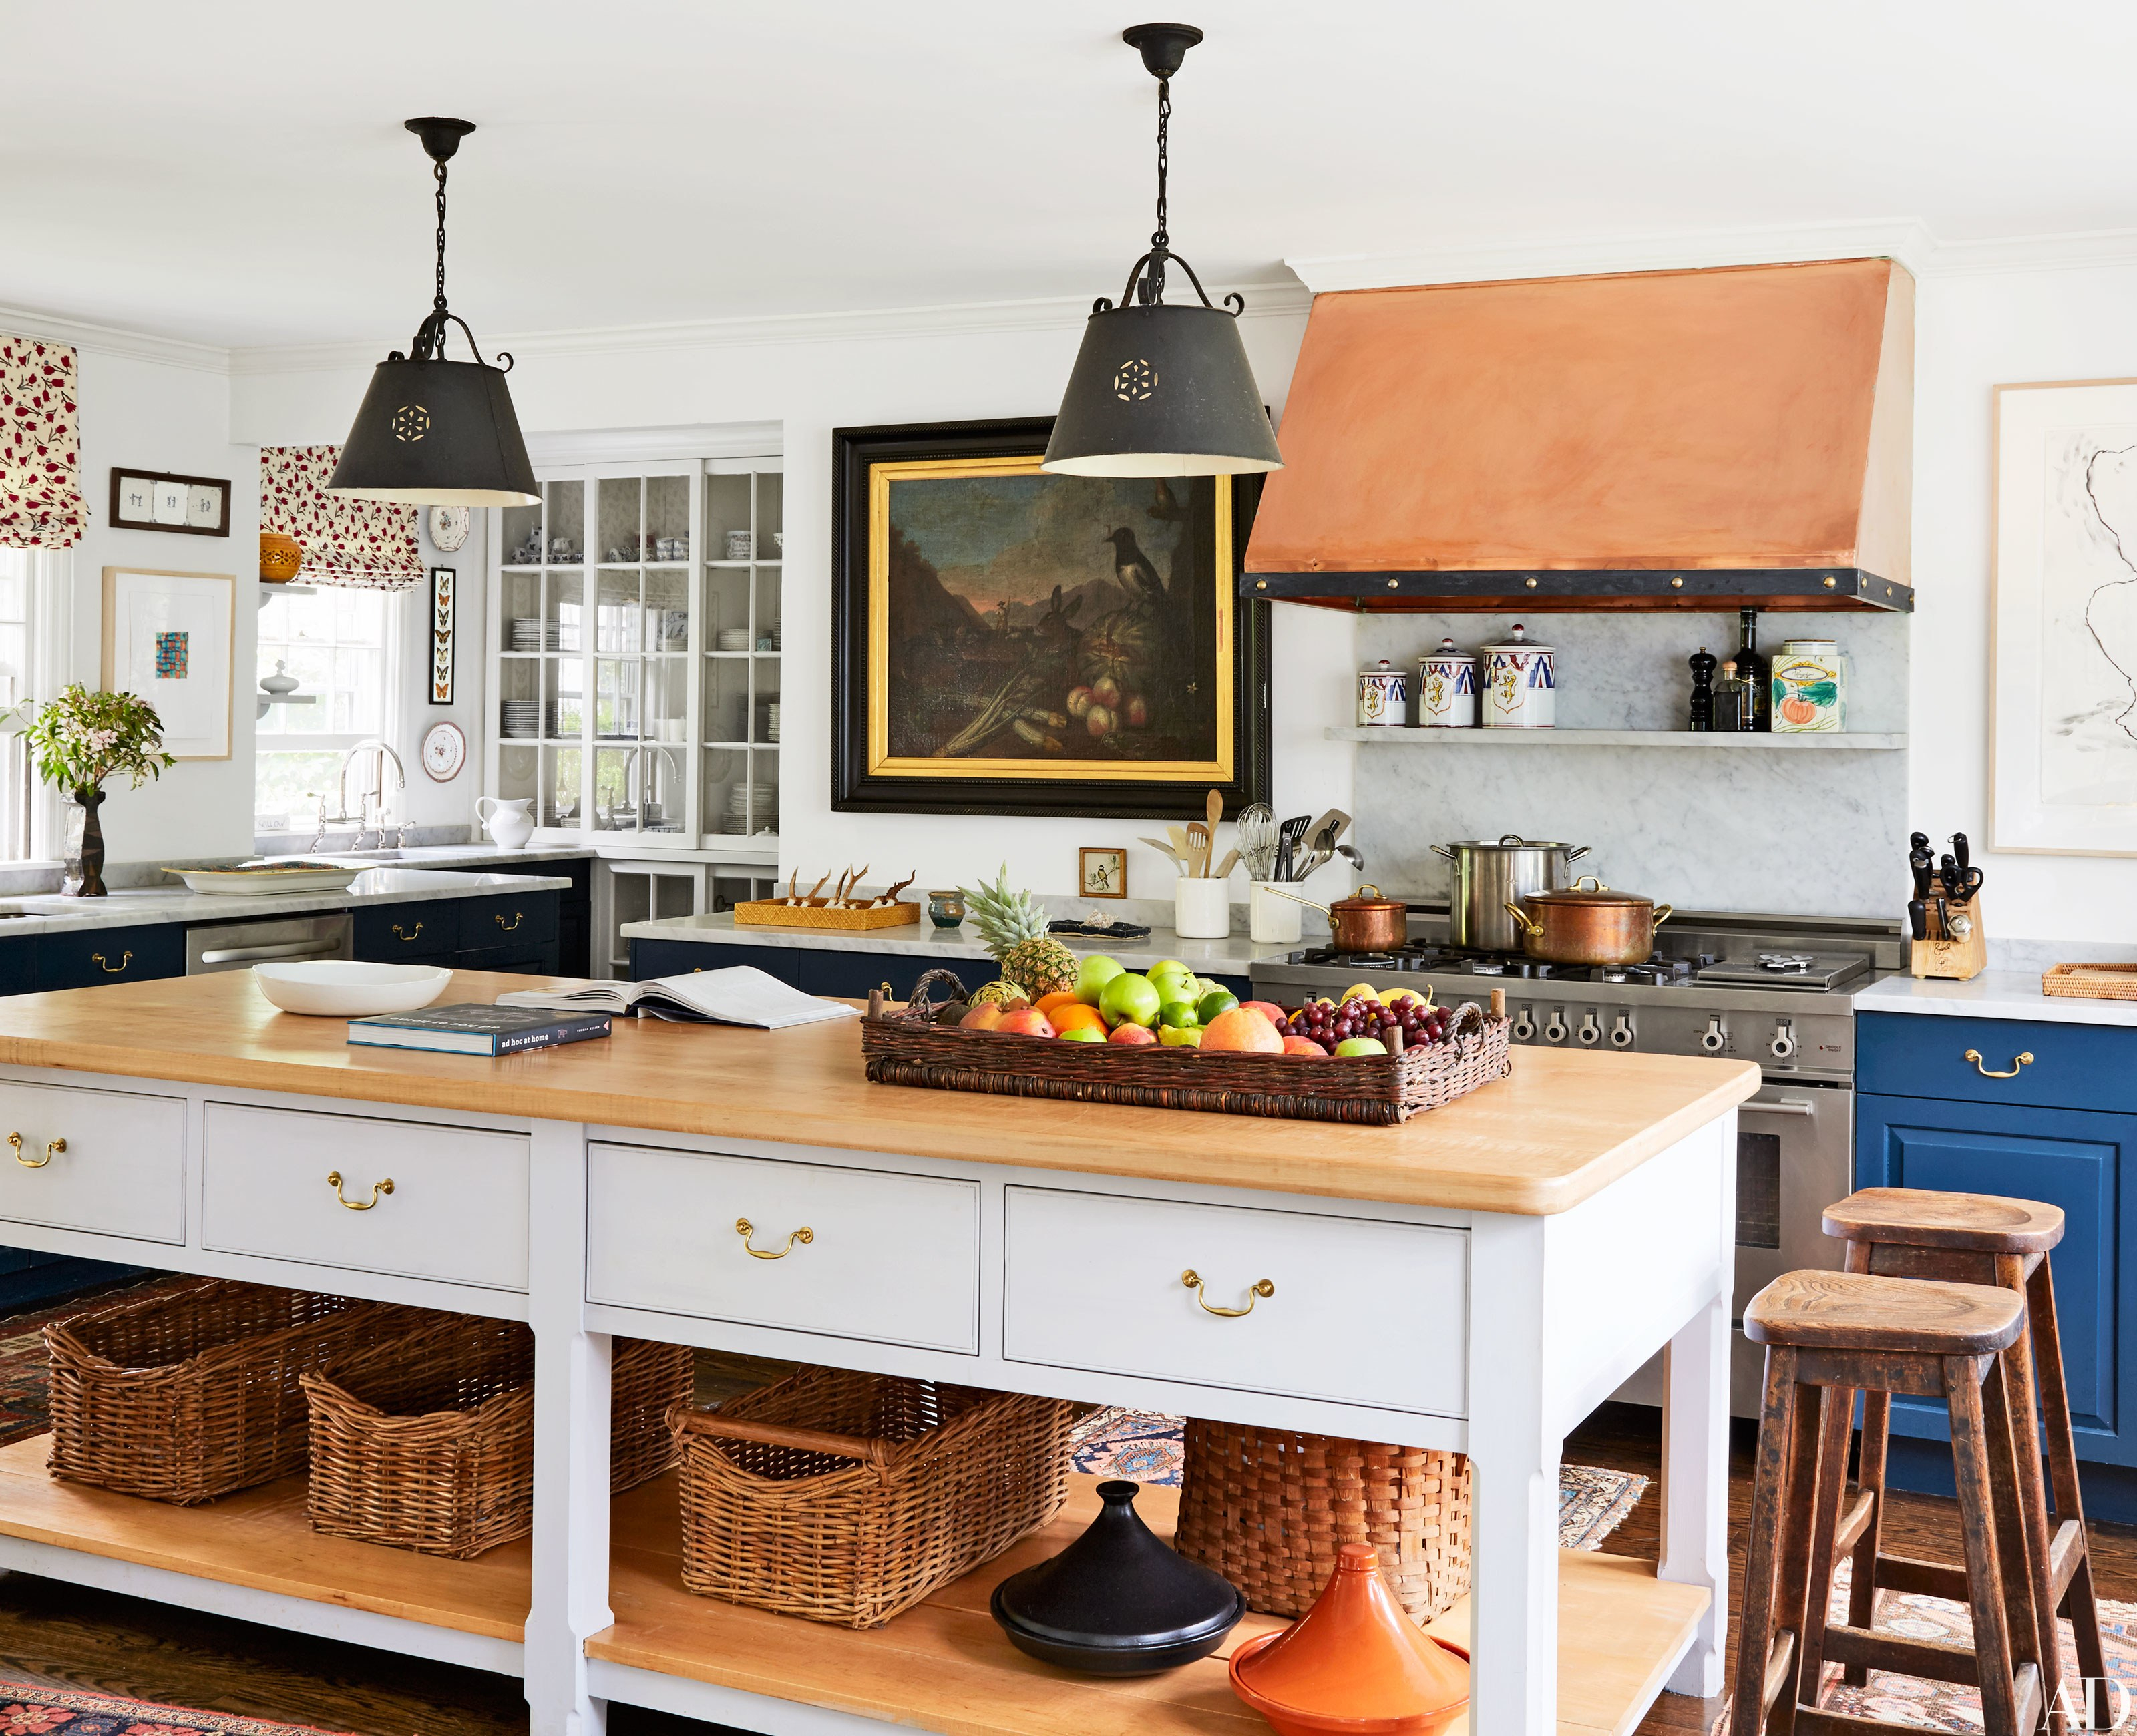 31 Kitchens With Pretty Pendant Lighting | Architectural Digest Pertaining To Ariel 2 Light Kitchen Island Dome Pendants (Image 2 of 30)